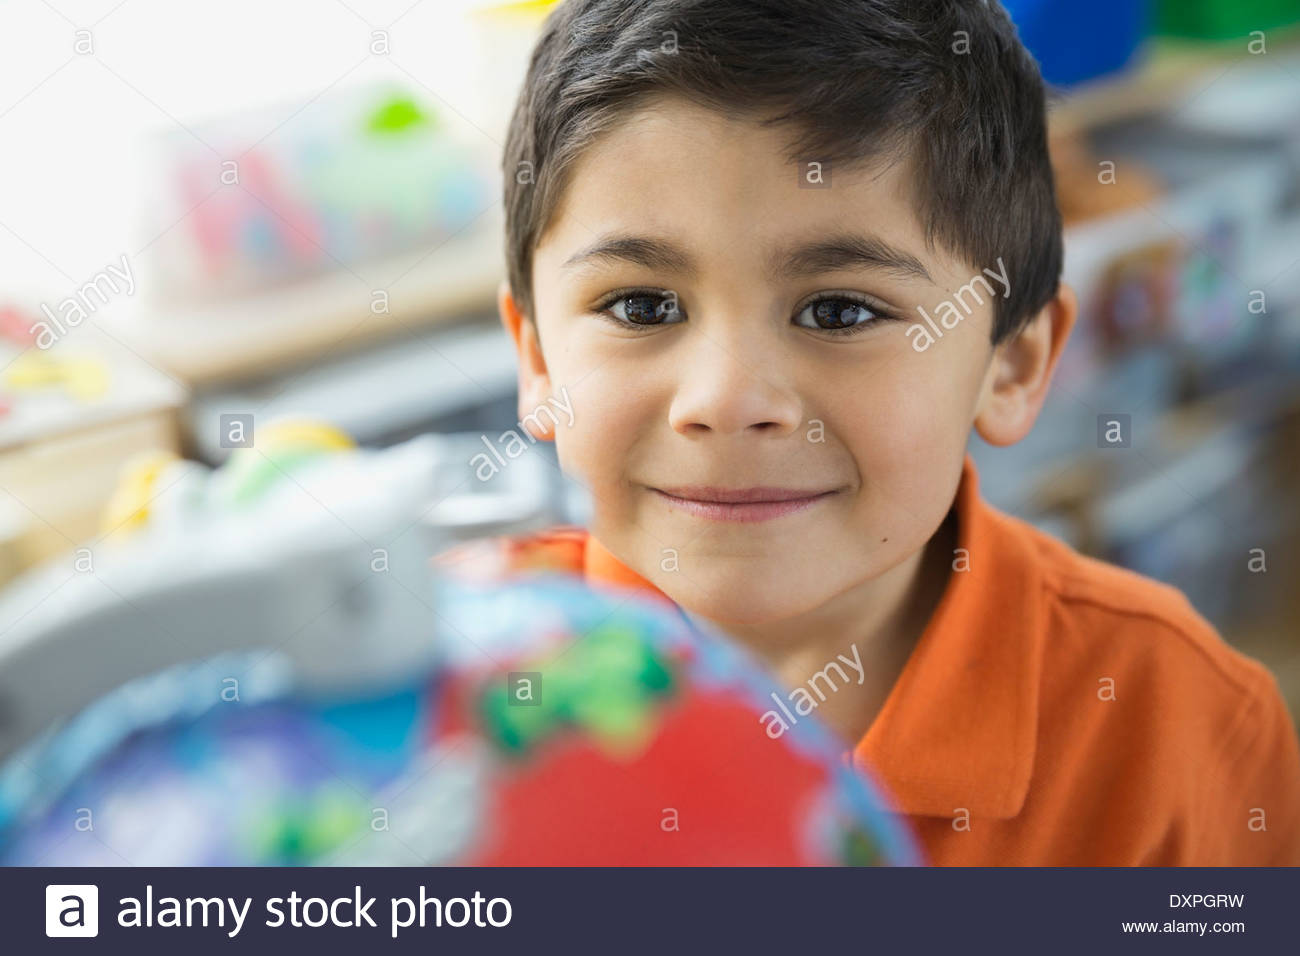 Portrait of smiling boy in school - Stock Image